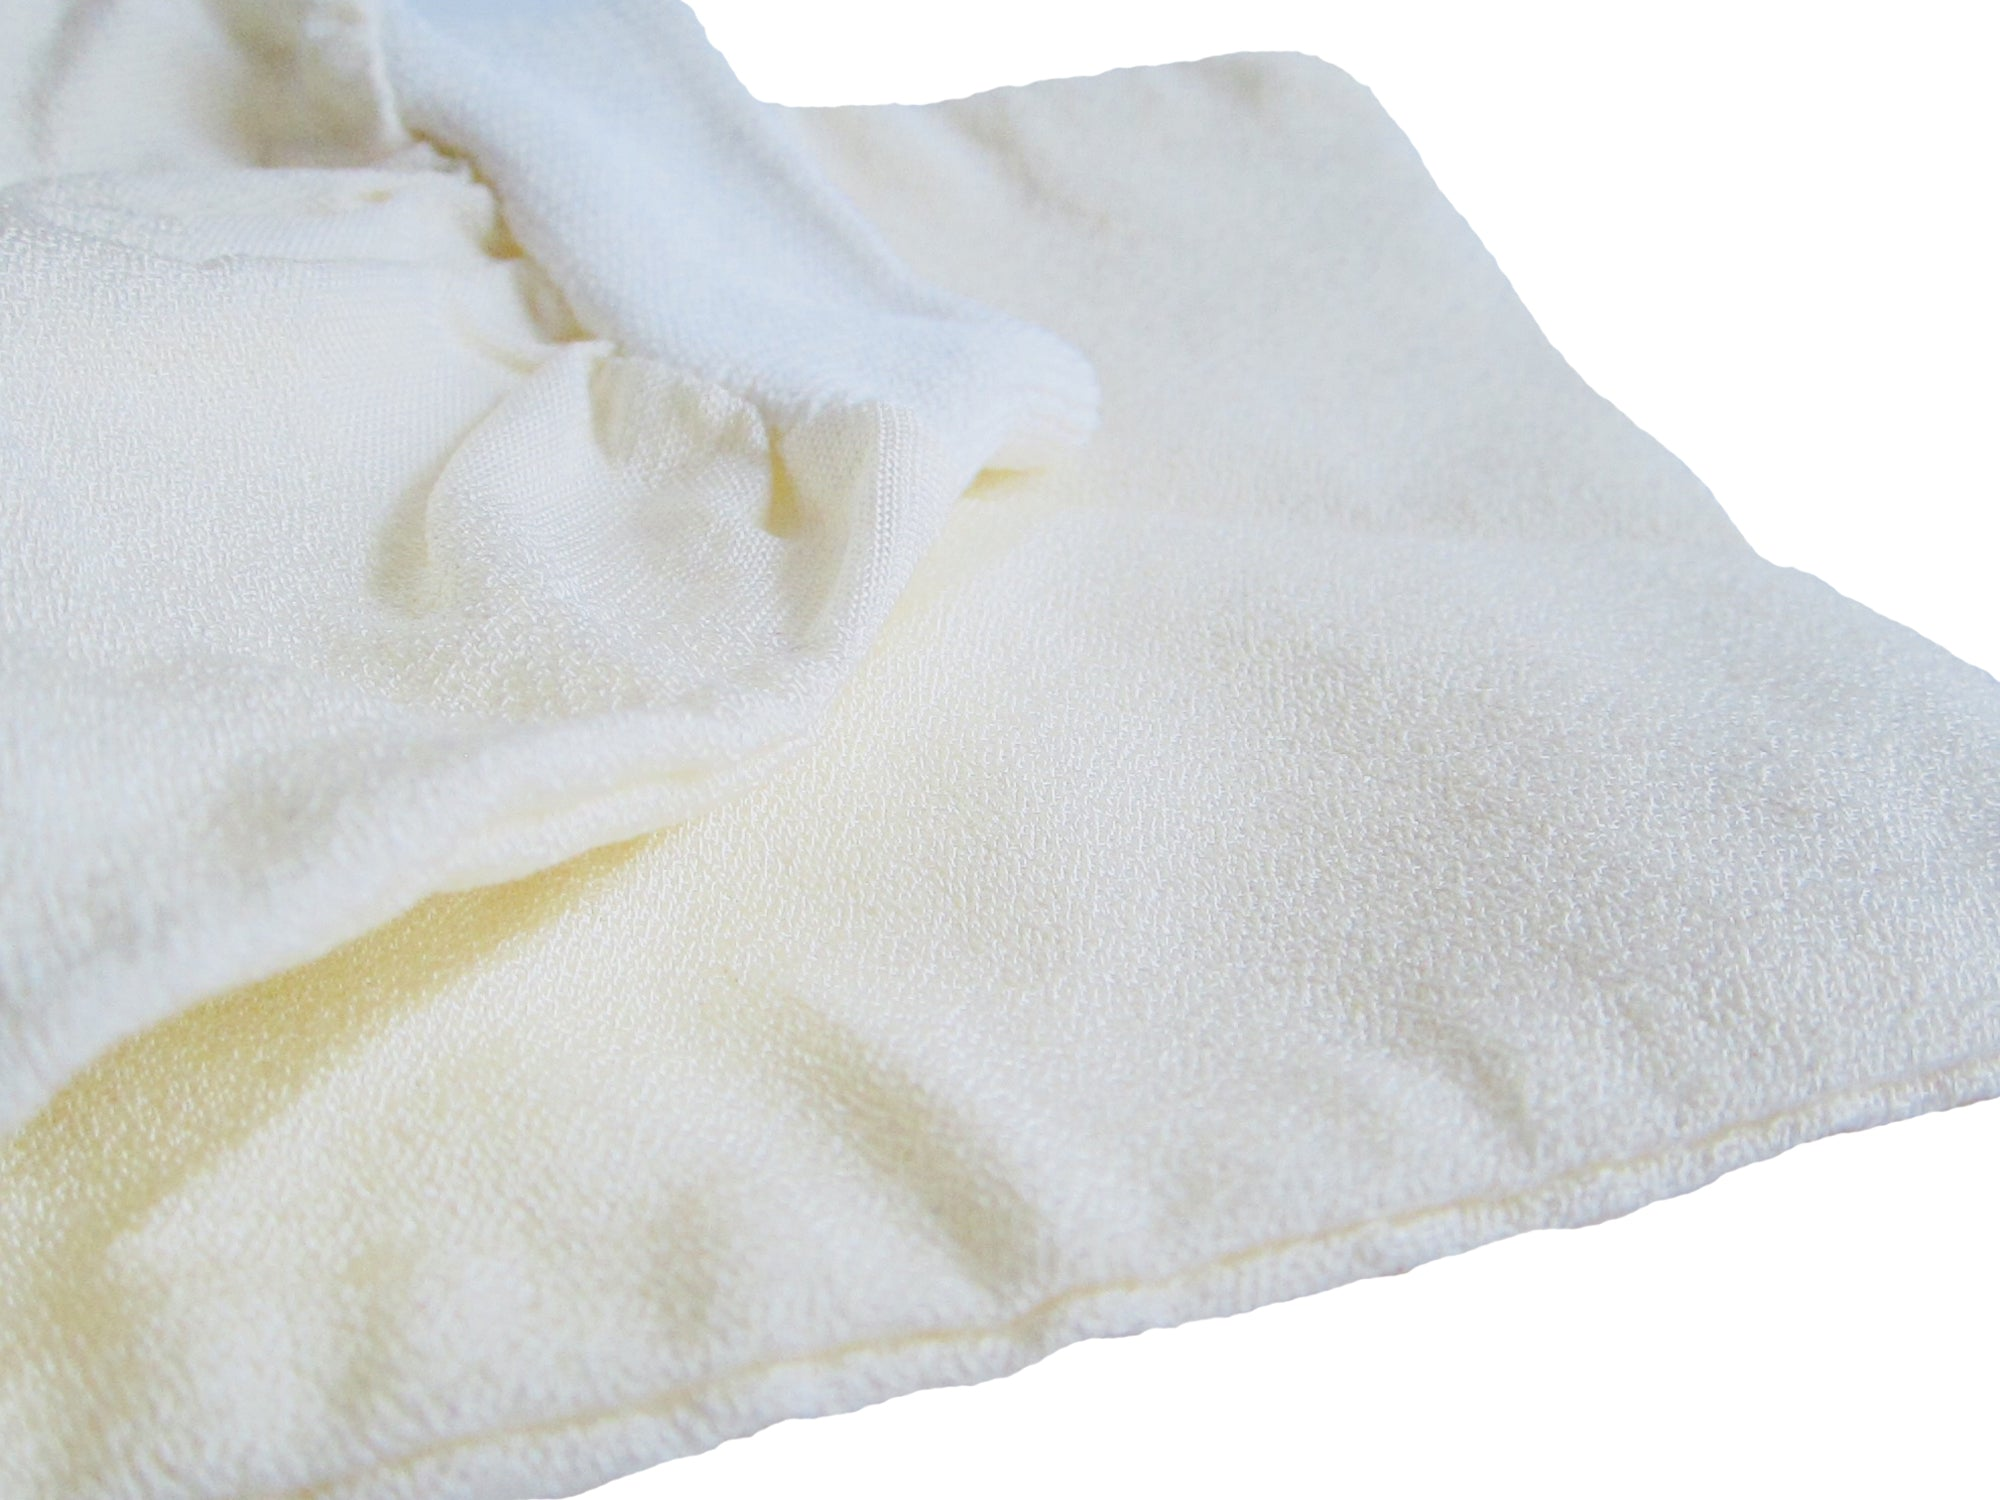 exfoliating scrubber gloves skin care